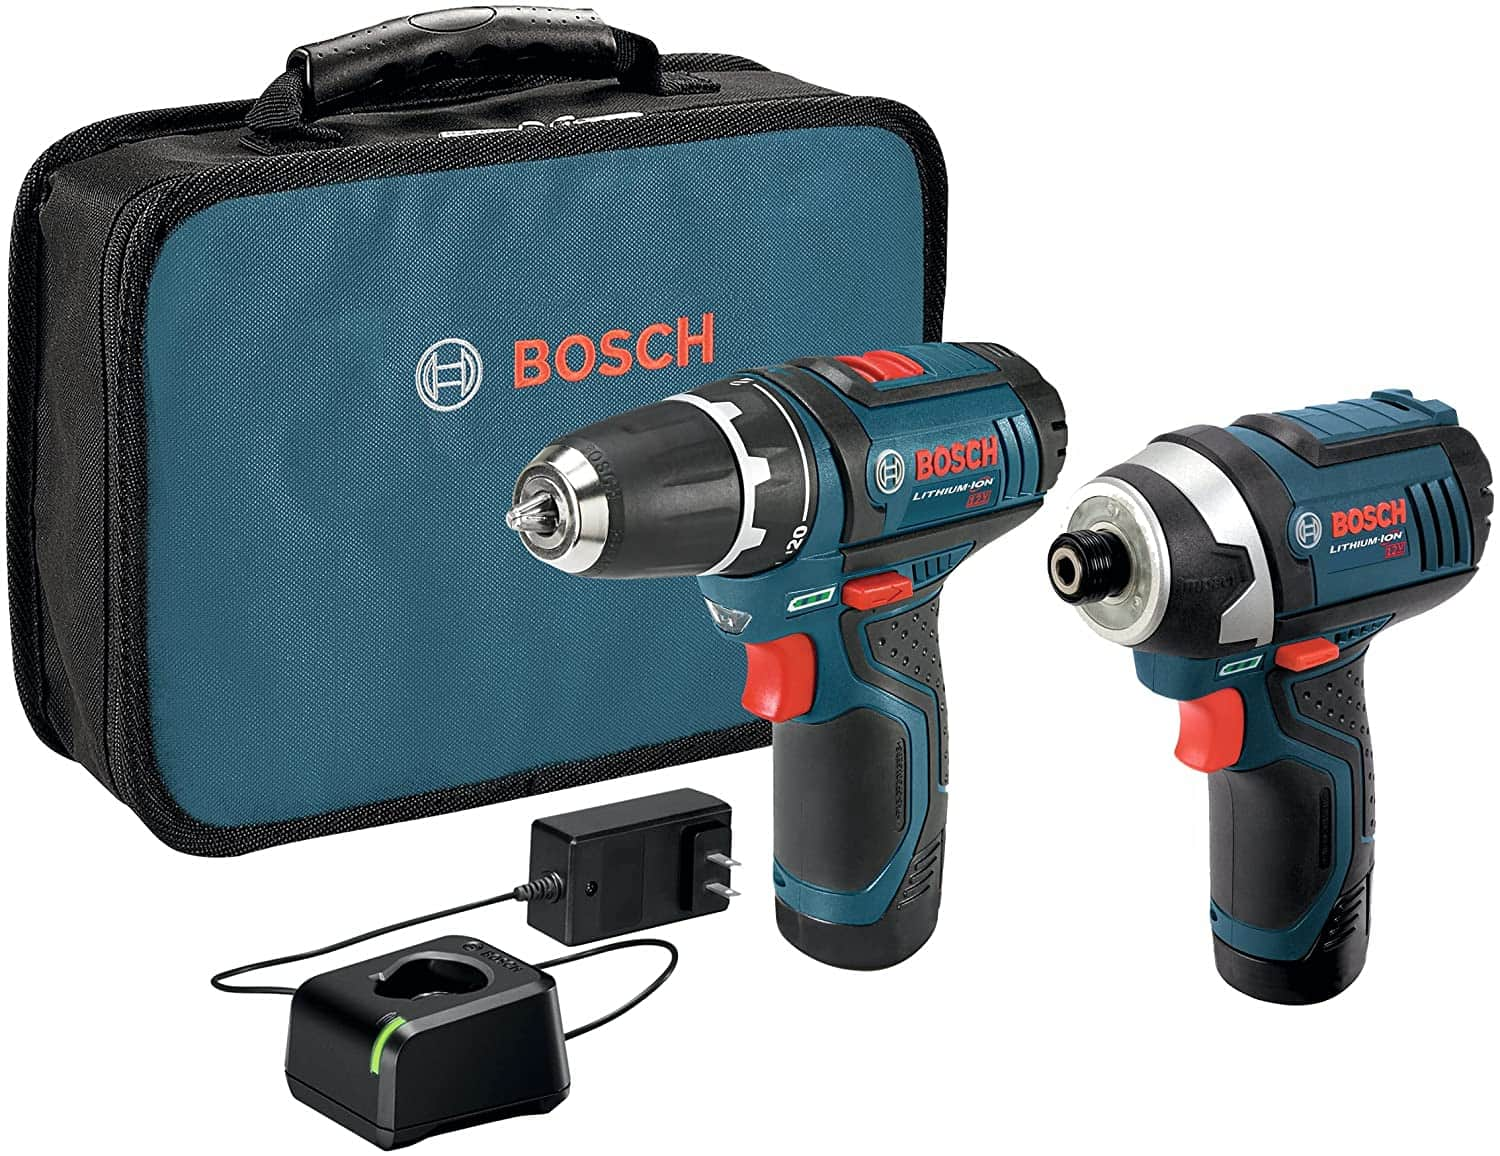 BOSCH Power Tools Combo Kit CLPK22-120 - 12-Volt Cordless Tool Set (Drill/Driver and Impact Driver) with 2 Batteries, Charger and Case $99.92